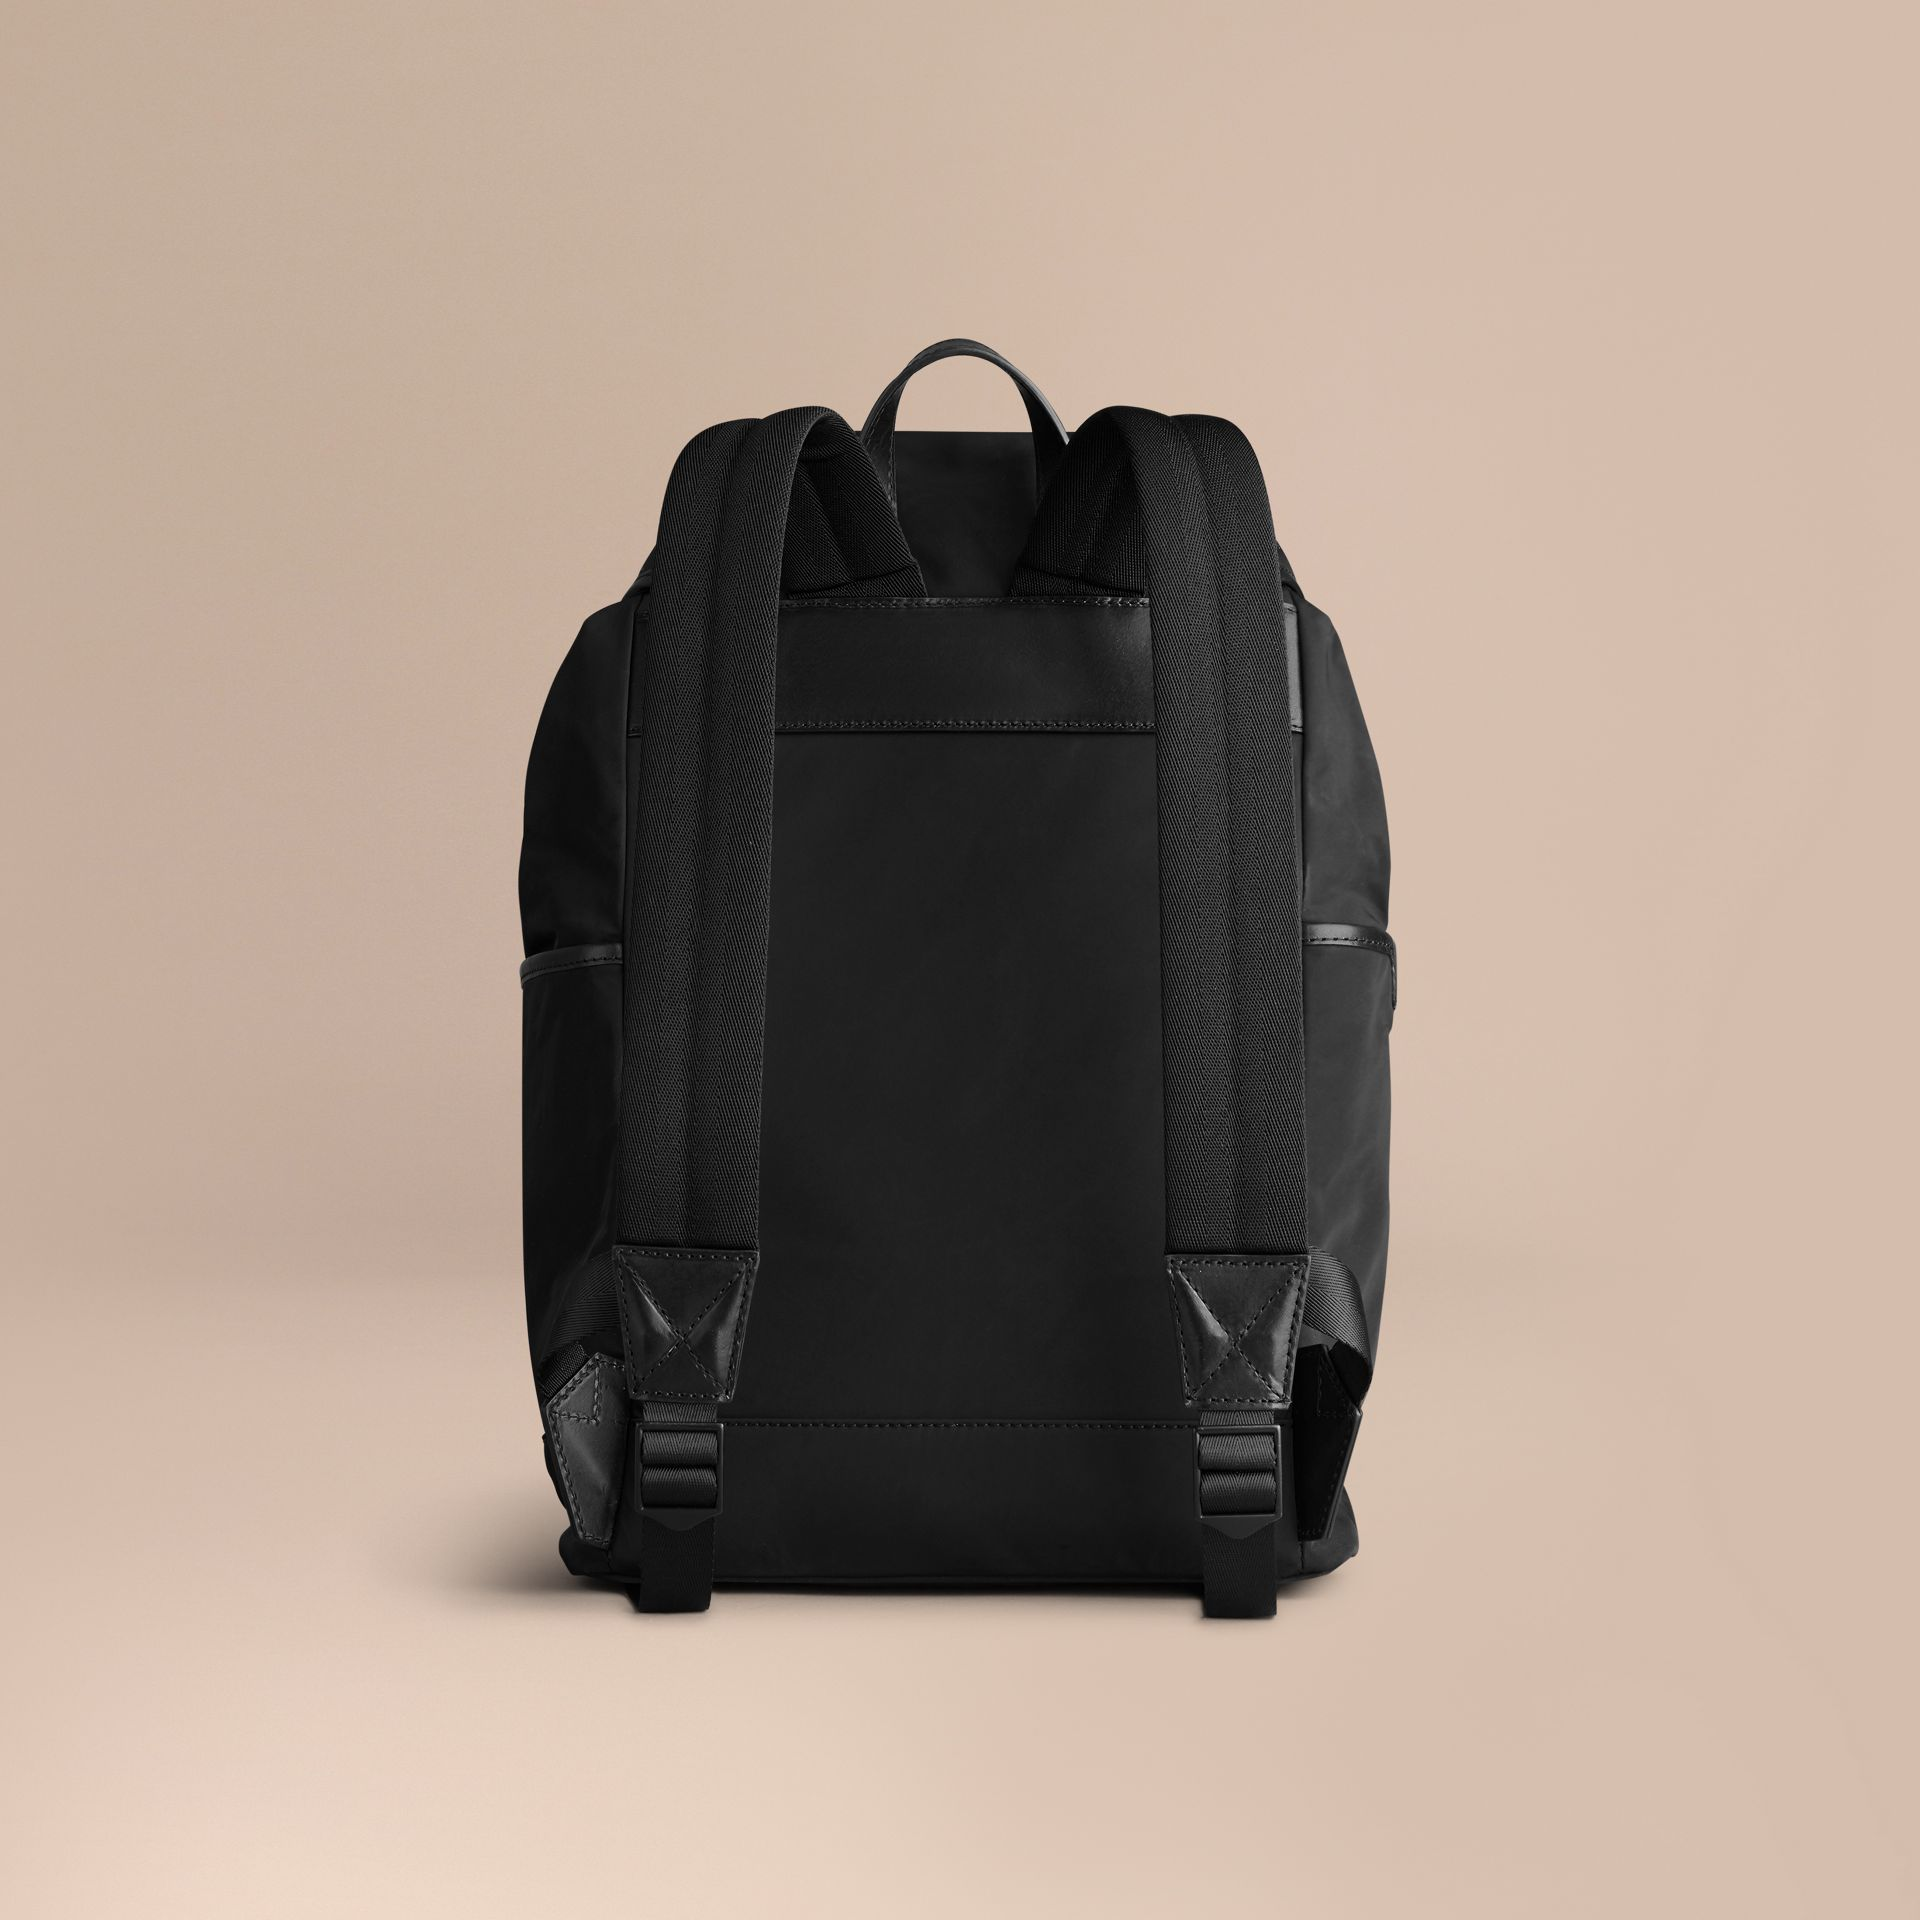 Black Leather Trim Lightweight Backpack Black - gallery image 4